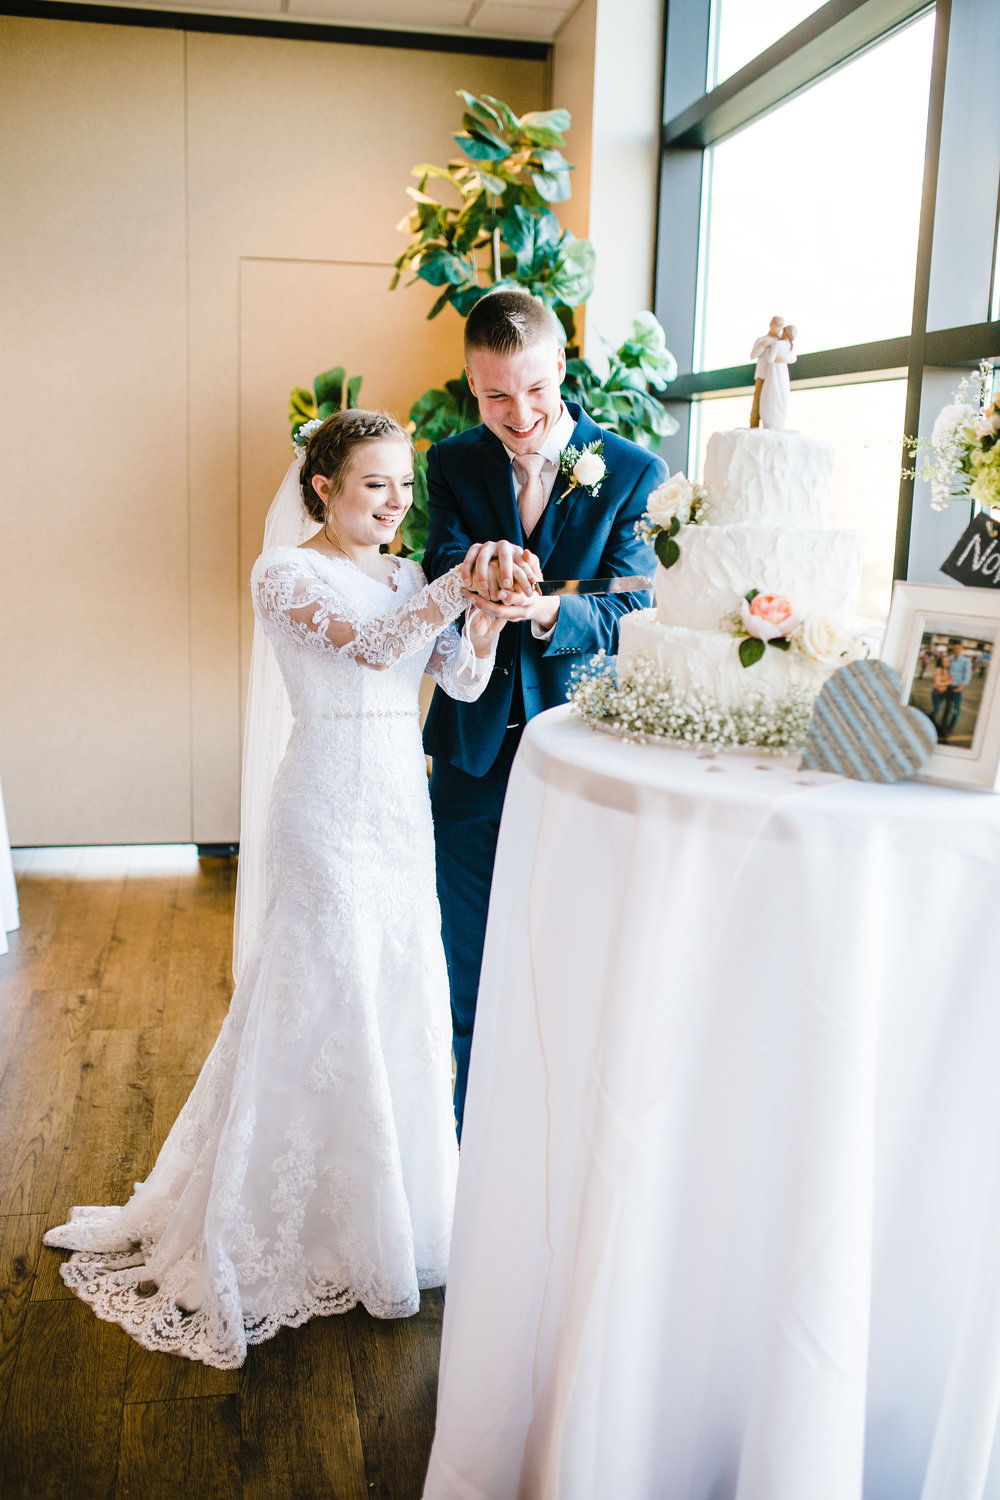 professional reception photographer wedding day arvada colorado bride and groom cutting the cake natural light